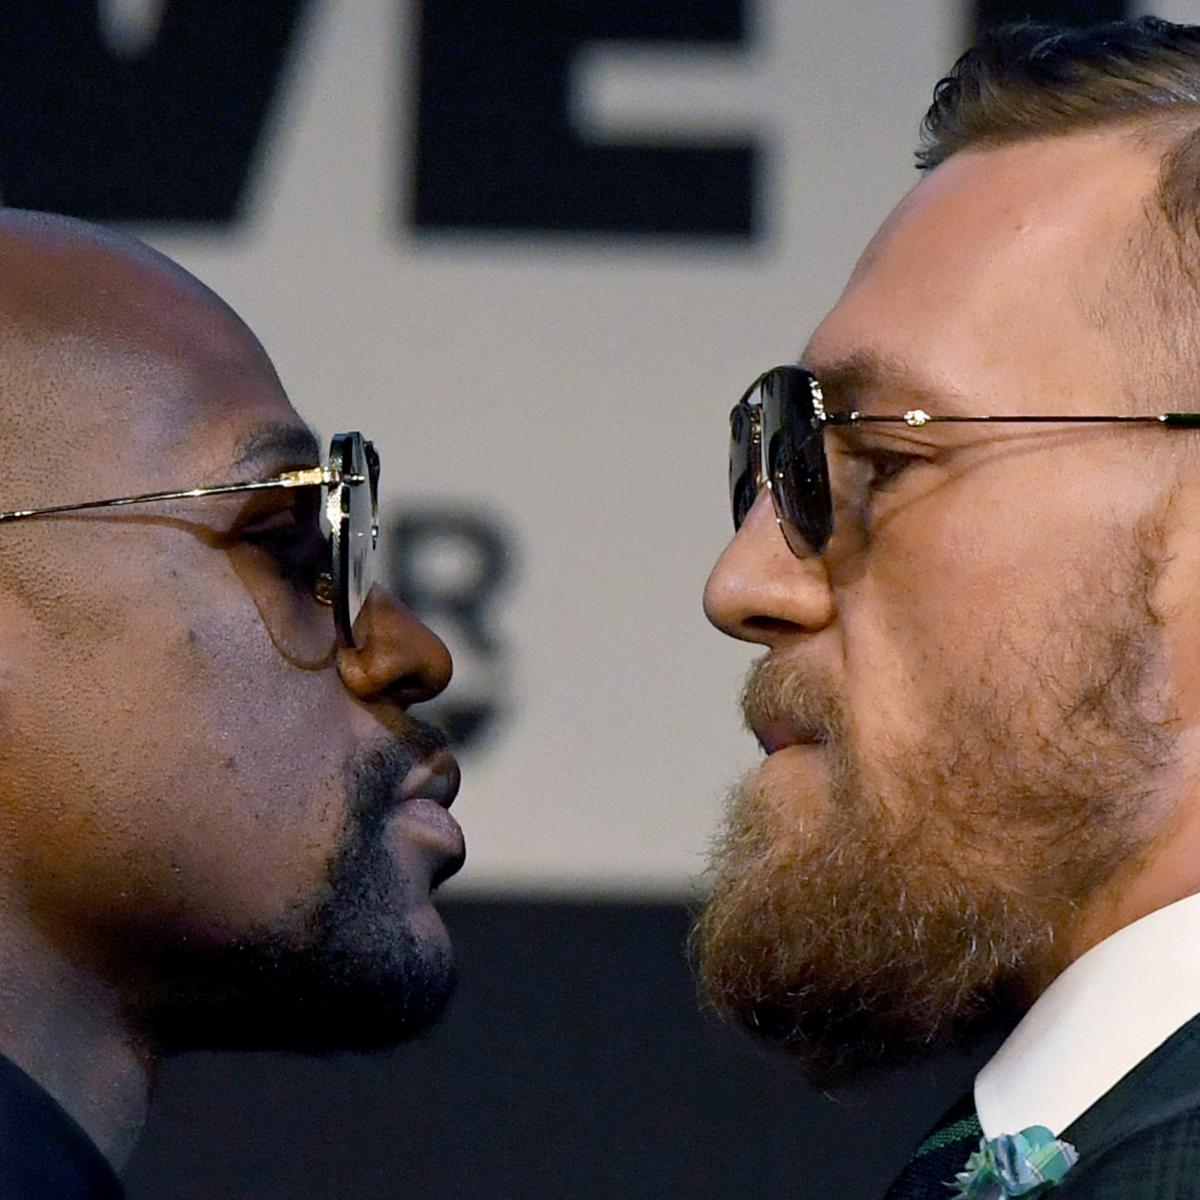 Mayweather vs. McGregor Odds: Latest Fight Lines for Money vs. Notorious